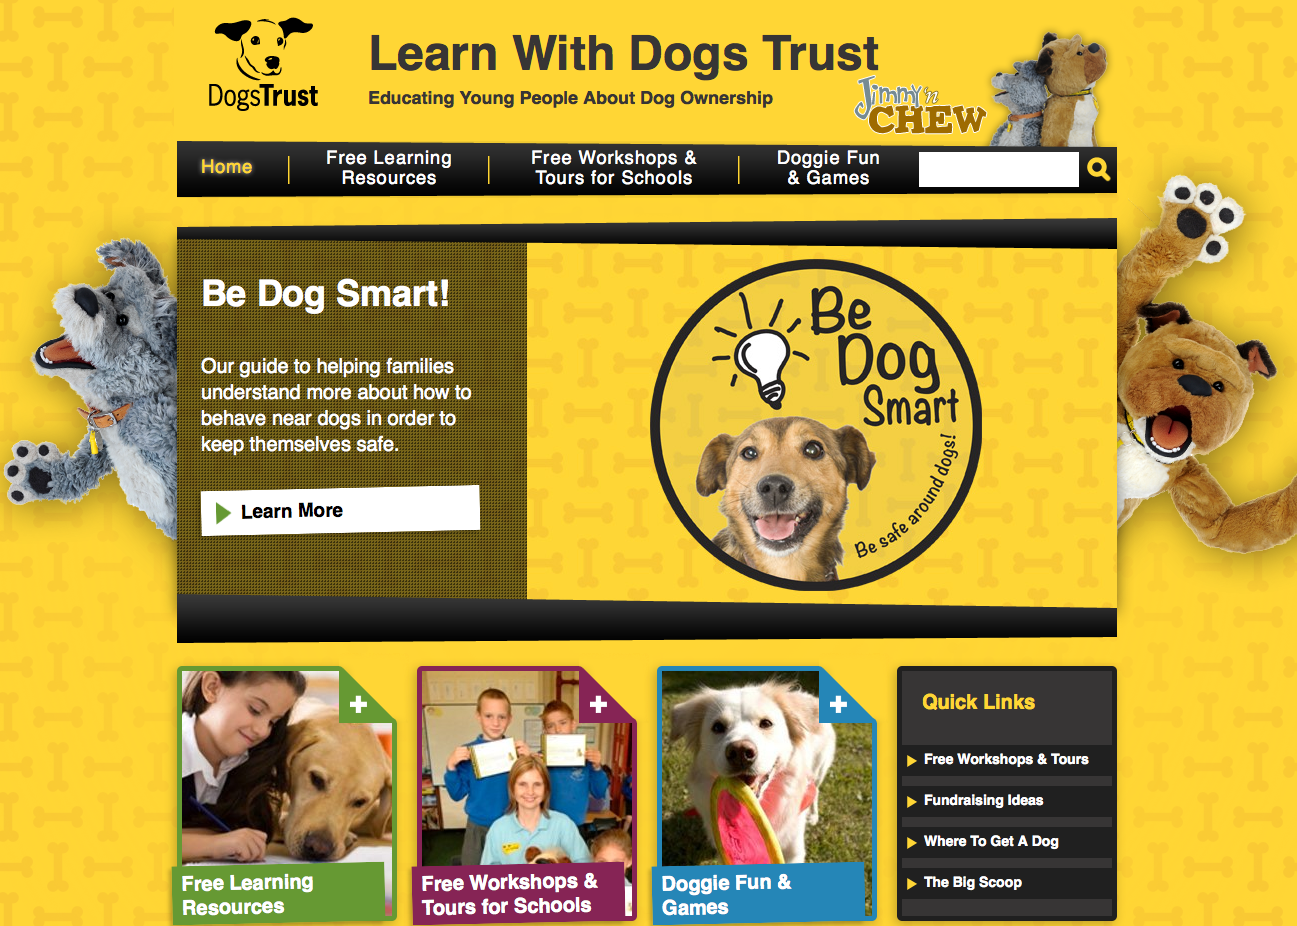 Learn With Dogs Trust